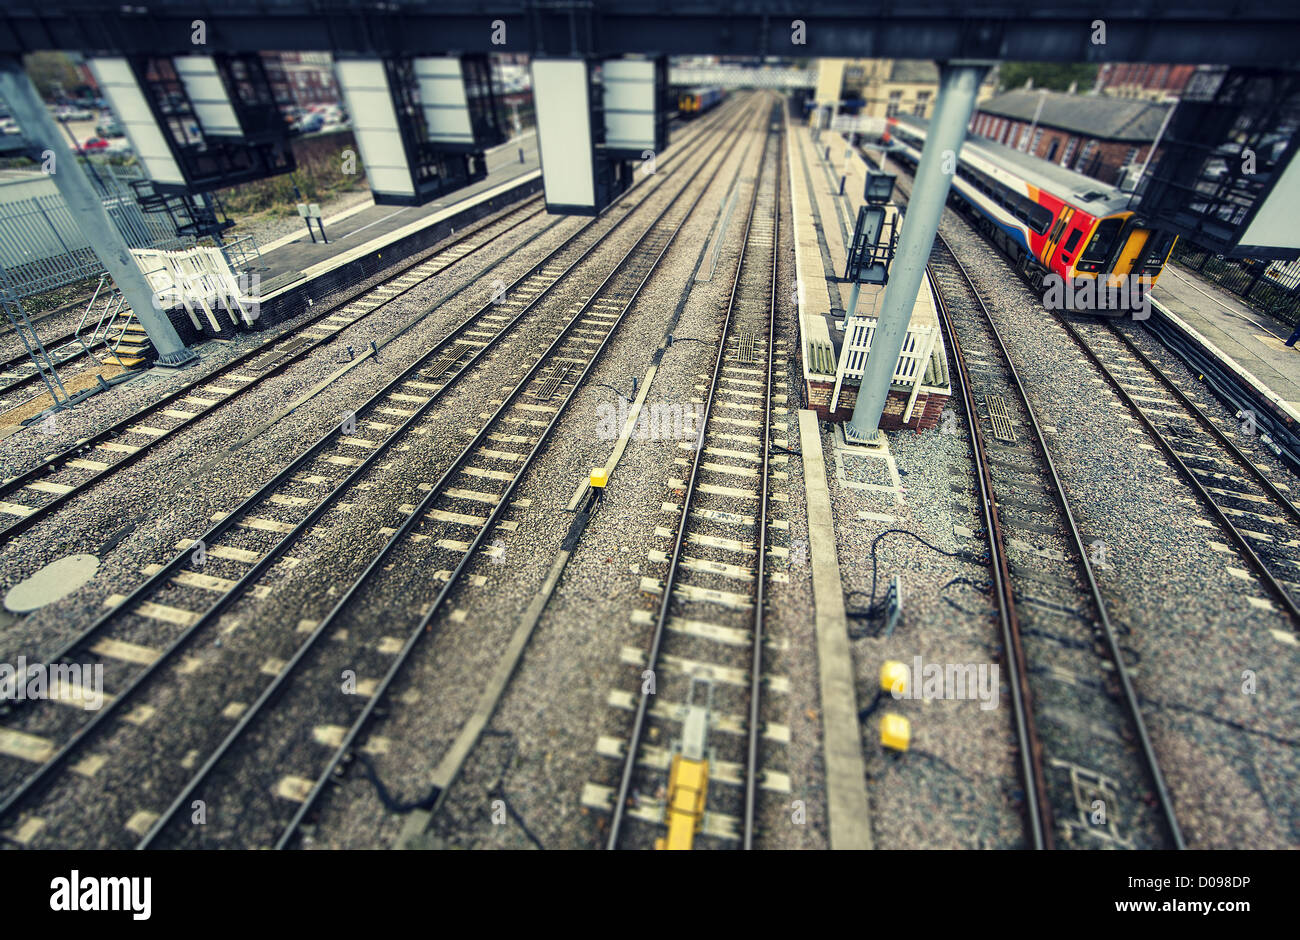 lincoln railway station platforms - Stock Image